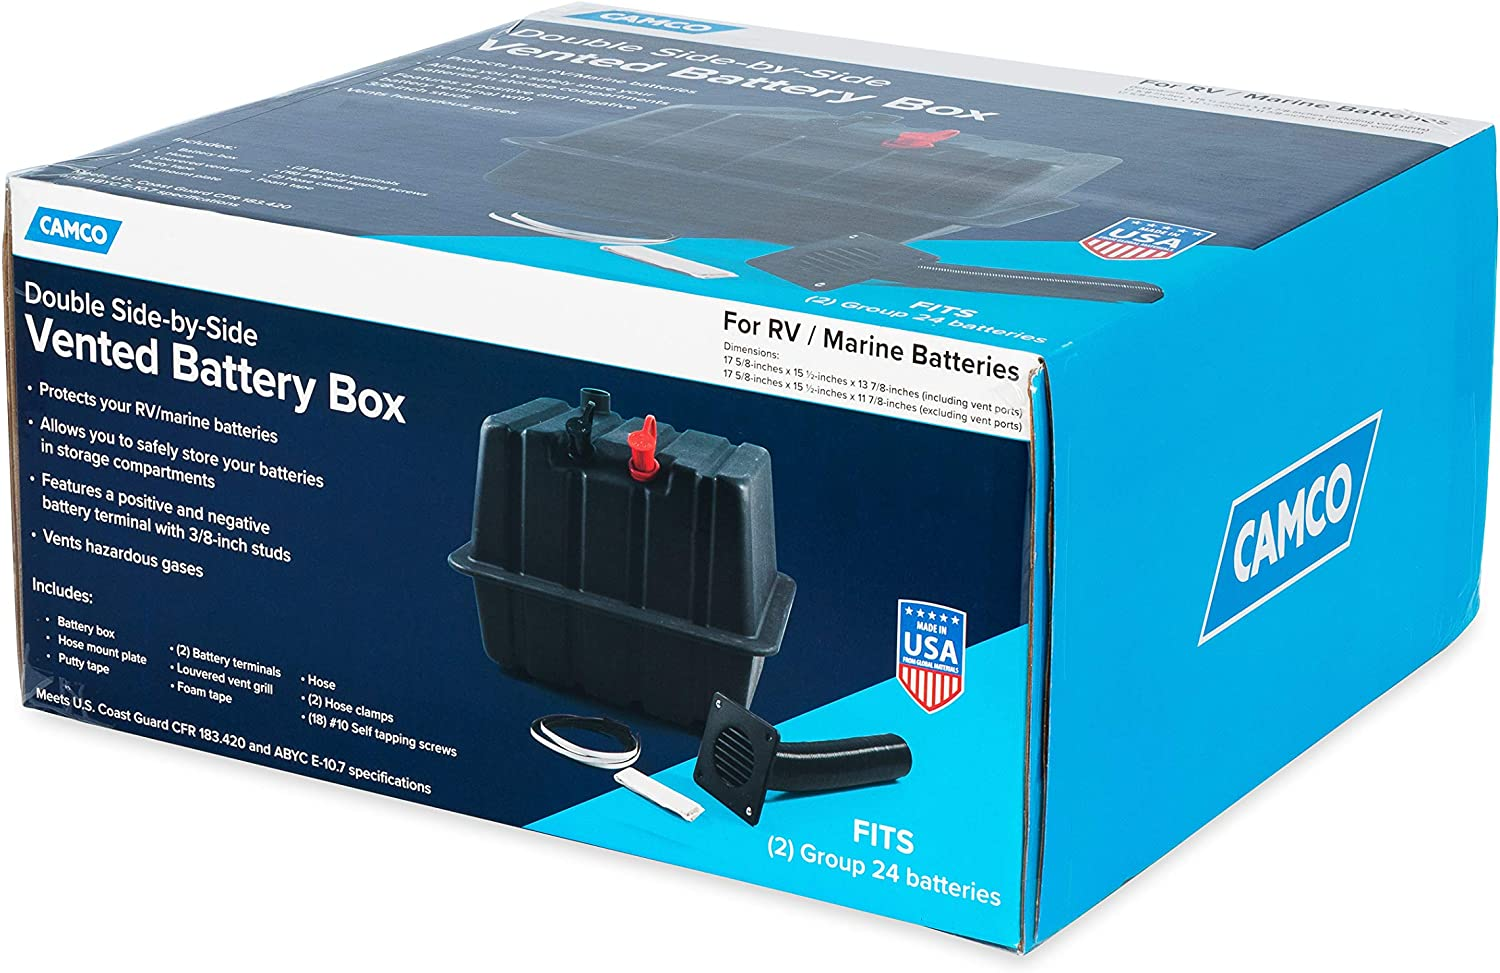 Protects Your RV or Marine Battery from Collisions and Contaminants Double Side-by-Side Group 24 Batteries Camco 55370 Vented RV//Marine Battery Box 2 Holds